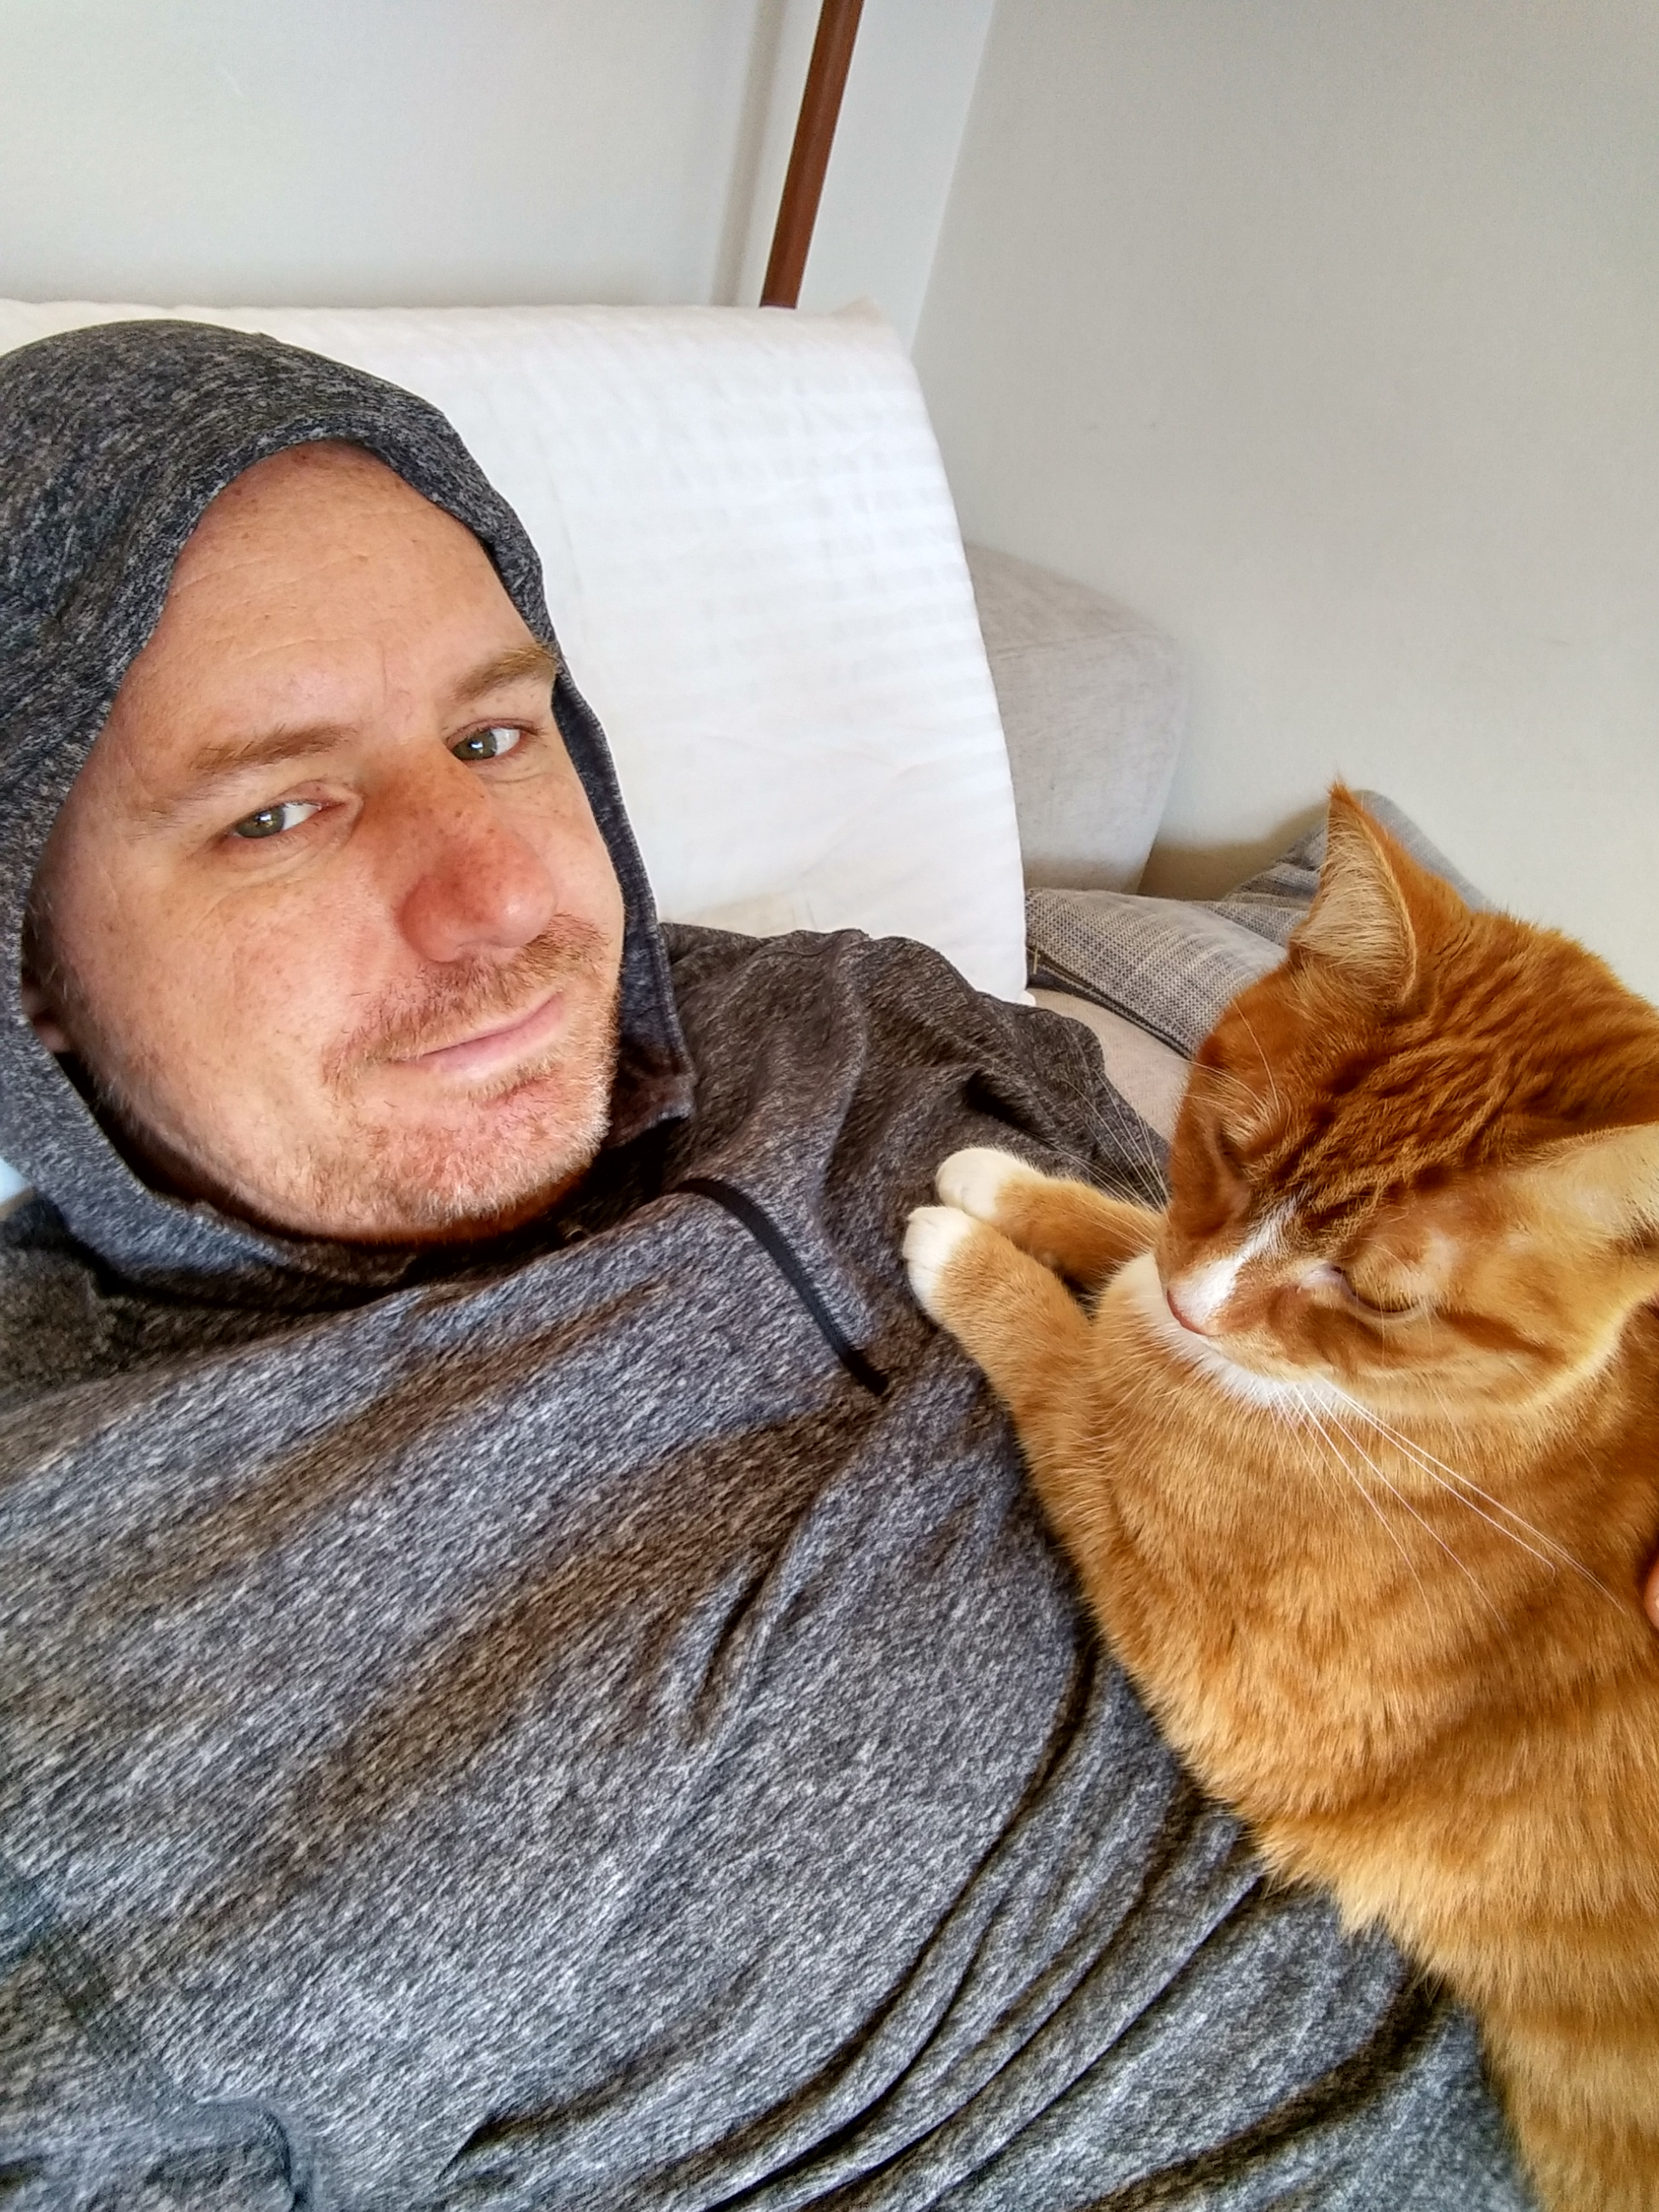 James. Cat Person In Denial (CPID). - Husband to cat lady.Fashion and travel photographer.Sometimes cat photographer. Likes jumping off high things, adventure and snuggling ginger cats. Can be found reluctantly taking photos of cats.